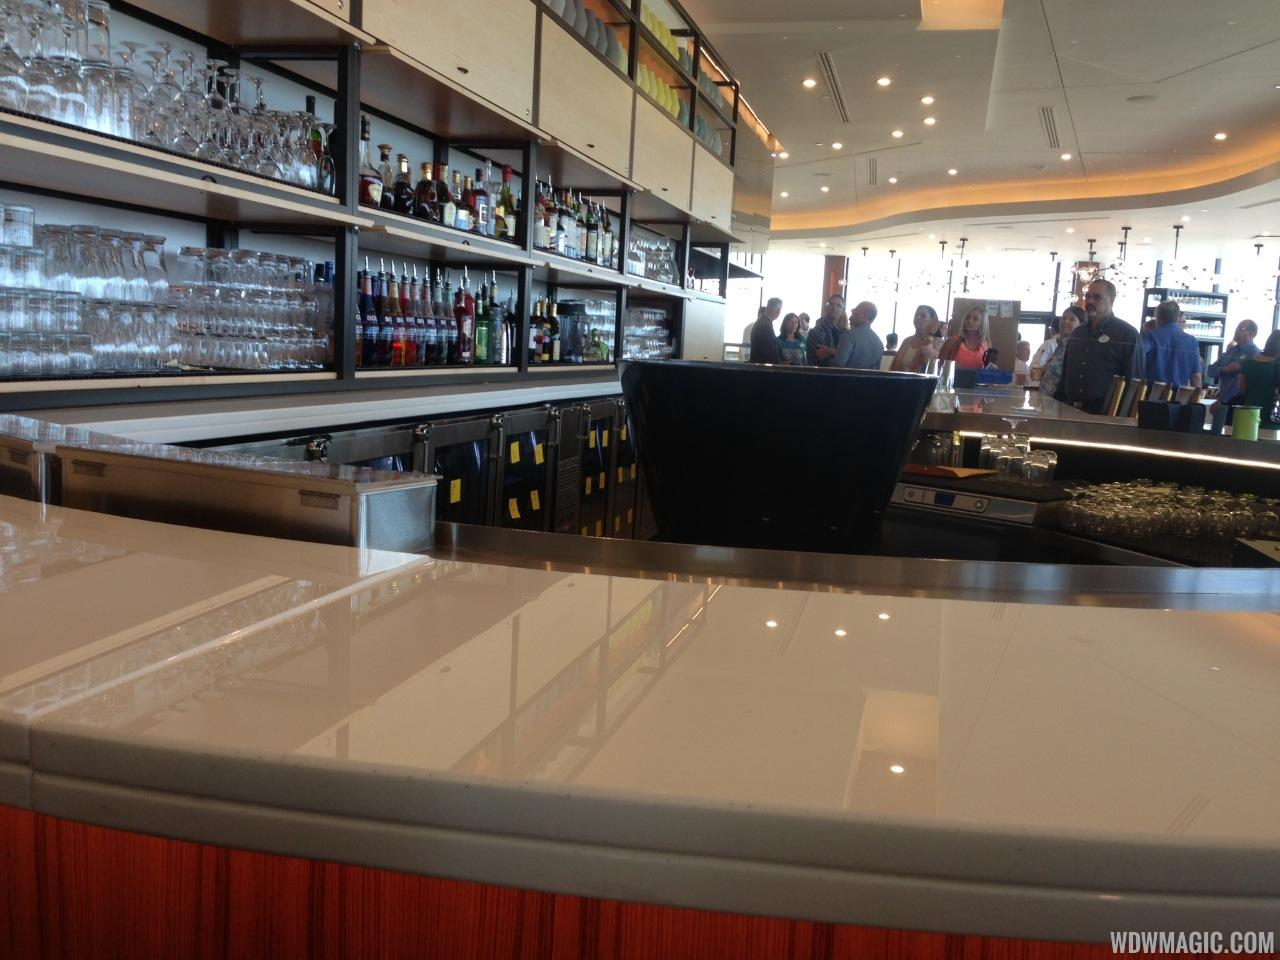 Inside the newly refurbished California Grill bar